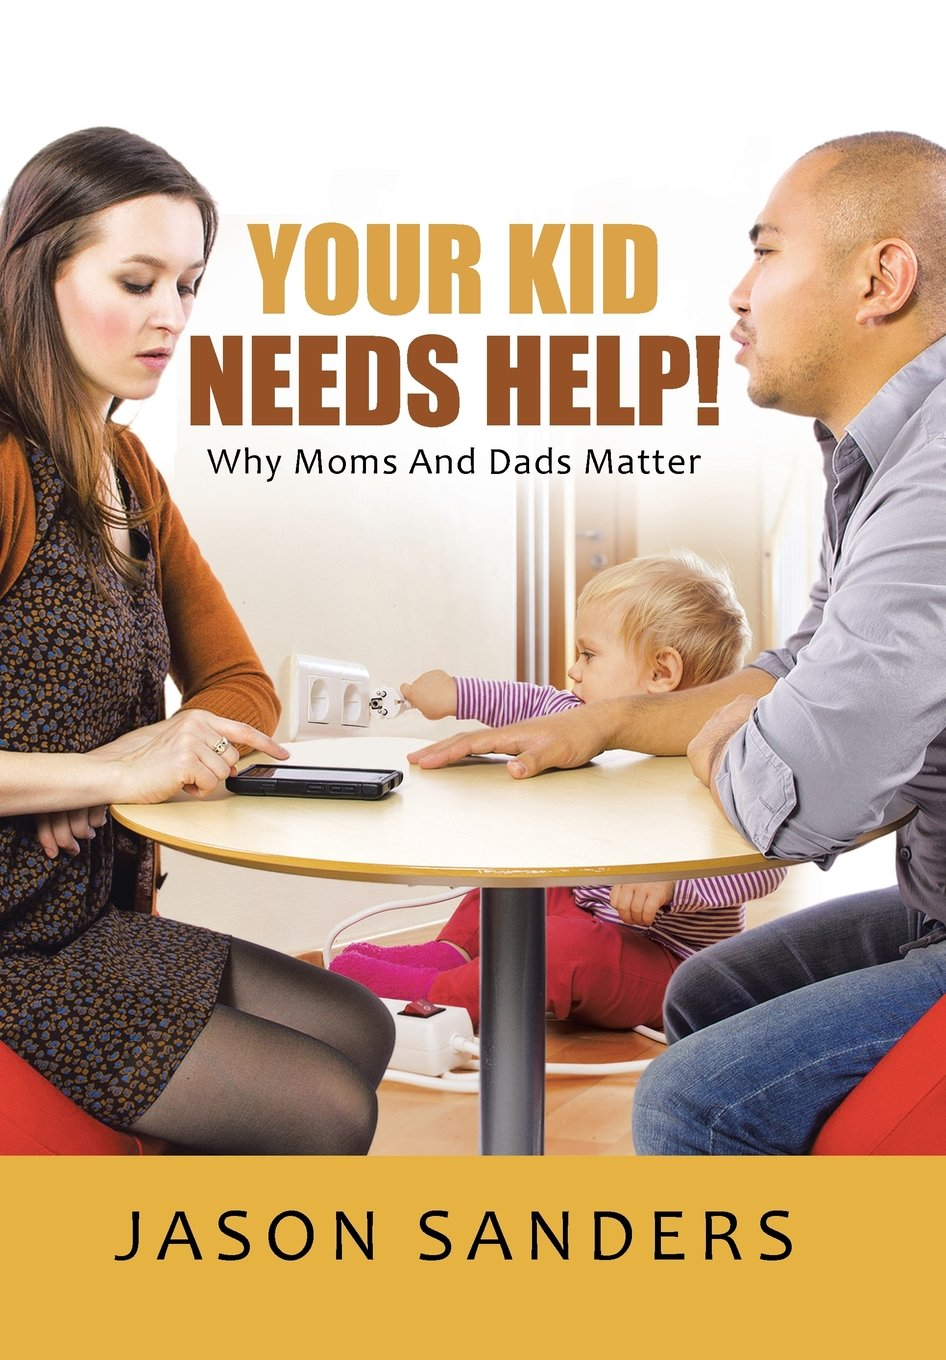 Your Kid Needs Help!: Why Moms And Dads Matter pdf